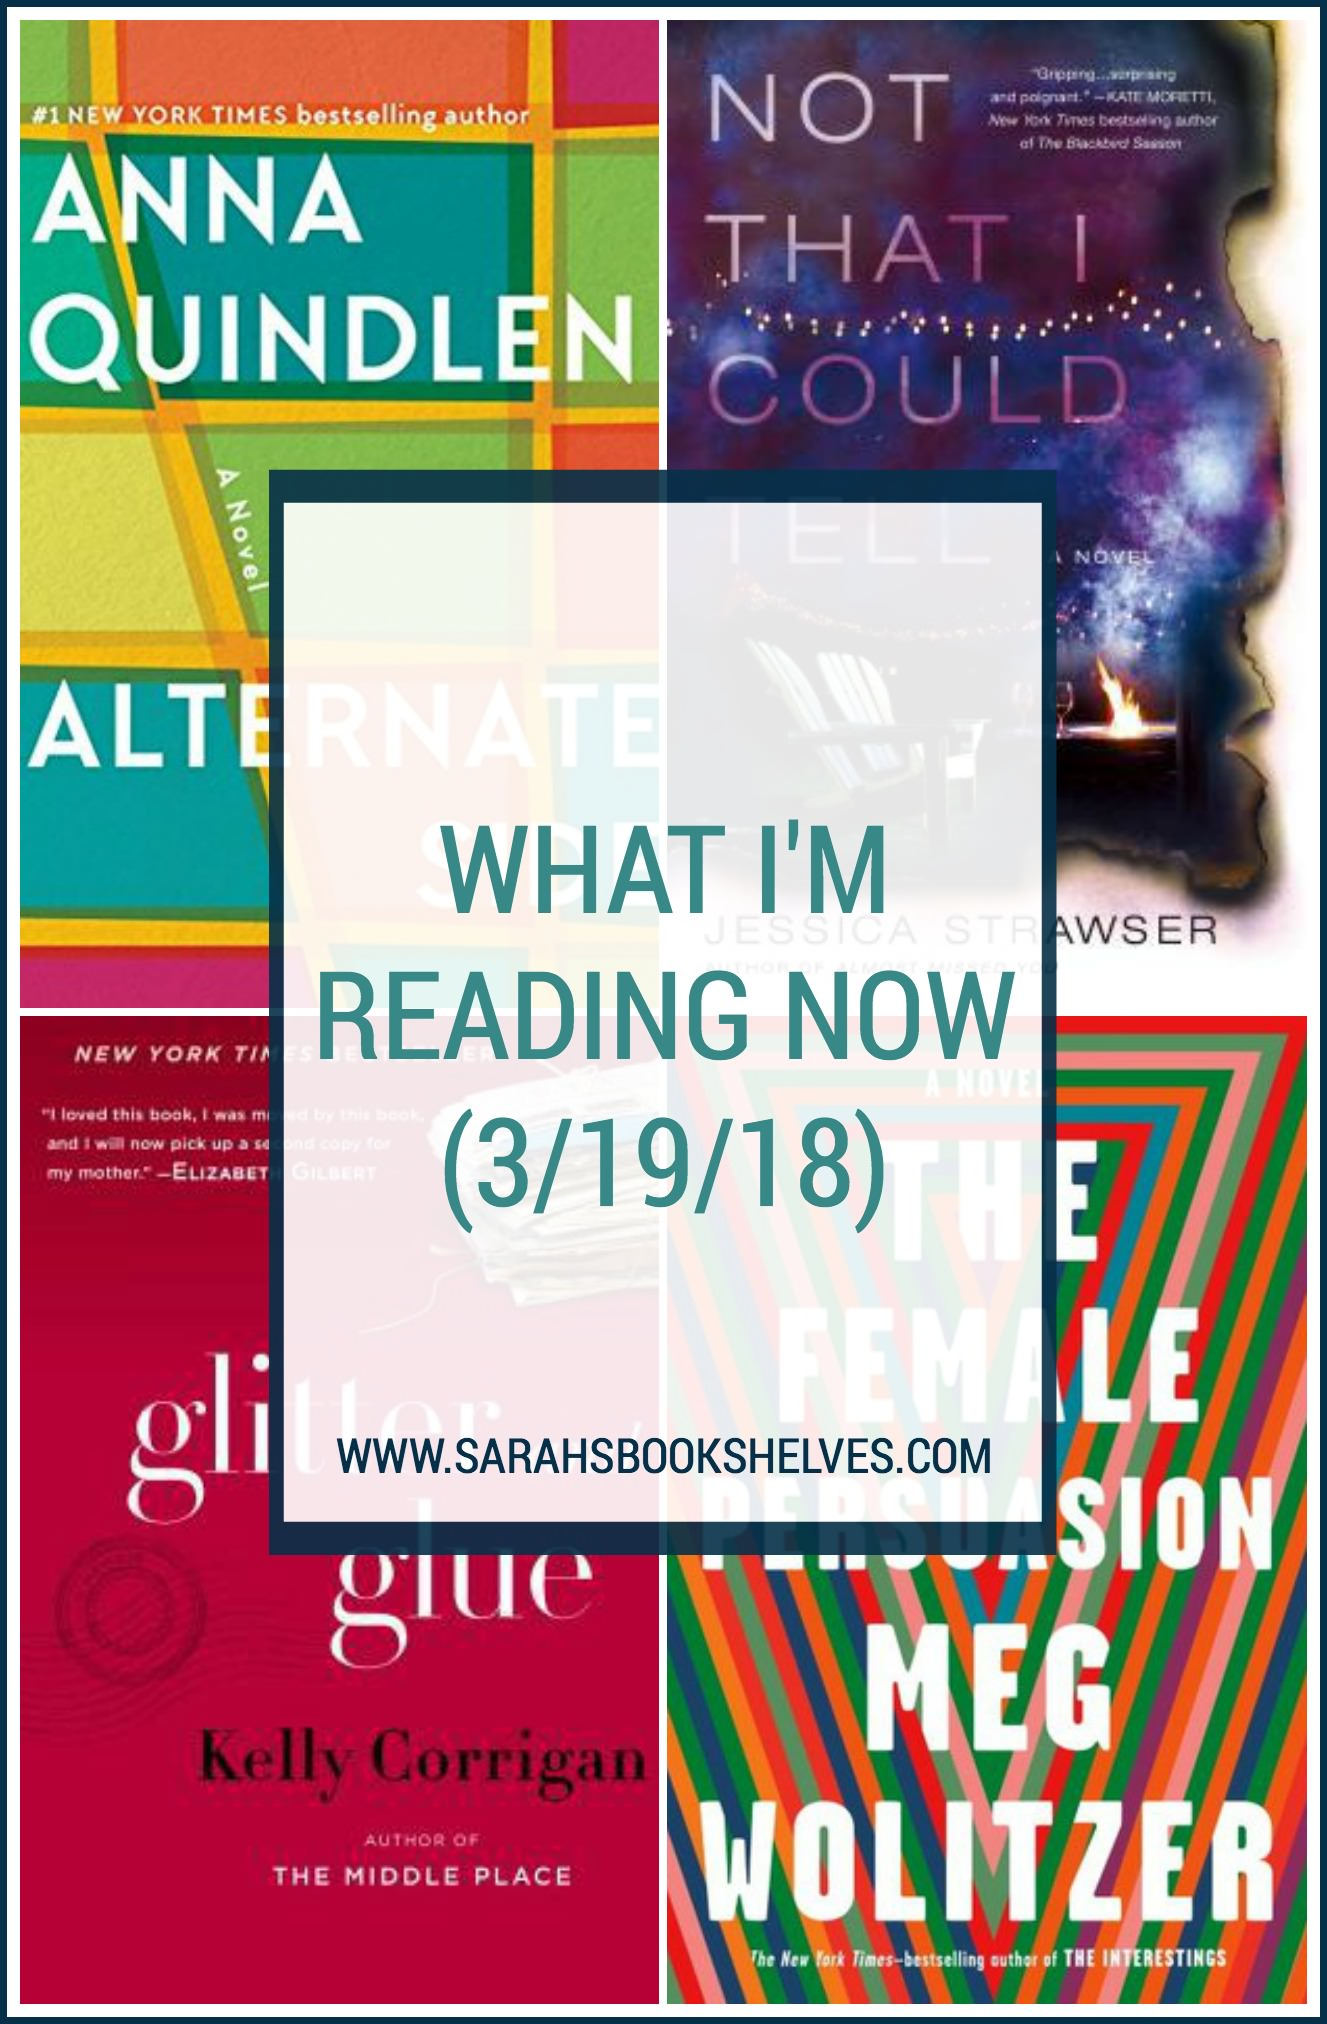 What I'm Reading Now (3/19/18): I just finished Alternate Side by Anna Quindlen, Not That I Could Tell by Jessica Strawser, Glitter and Glue by Kelly Corrigan, and am now reading The Female Persuasion by Meg Wolitzer. #reading #book #bookish #bookworms #booklovers